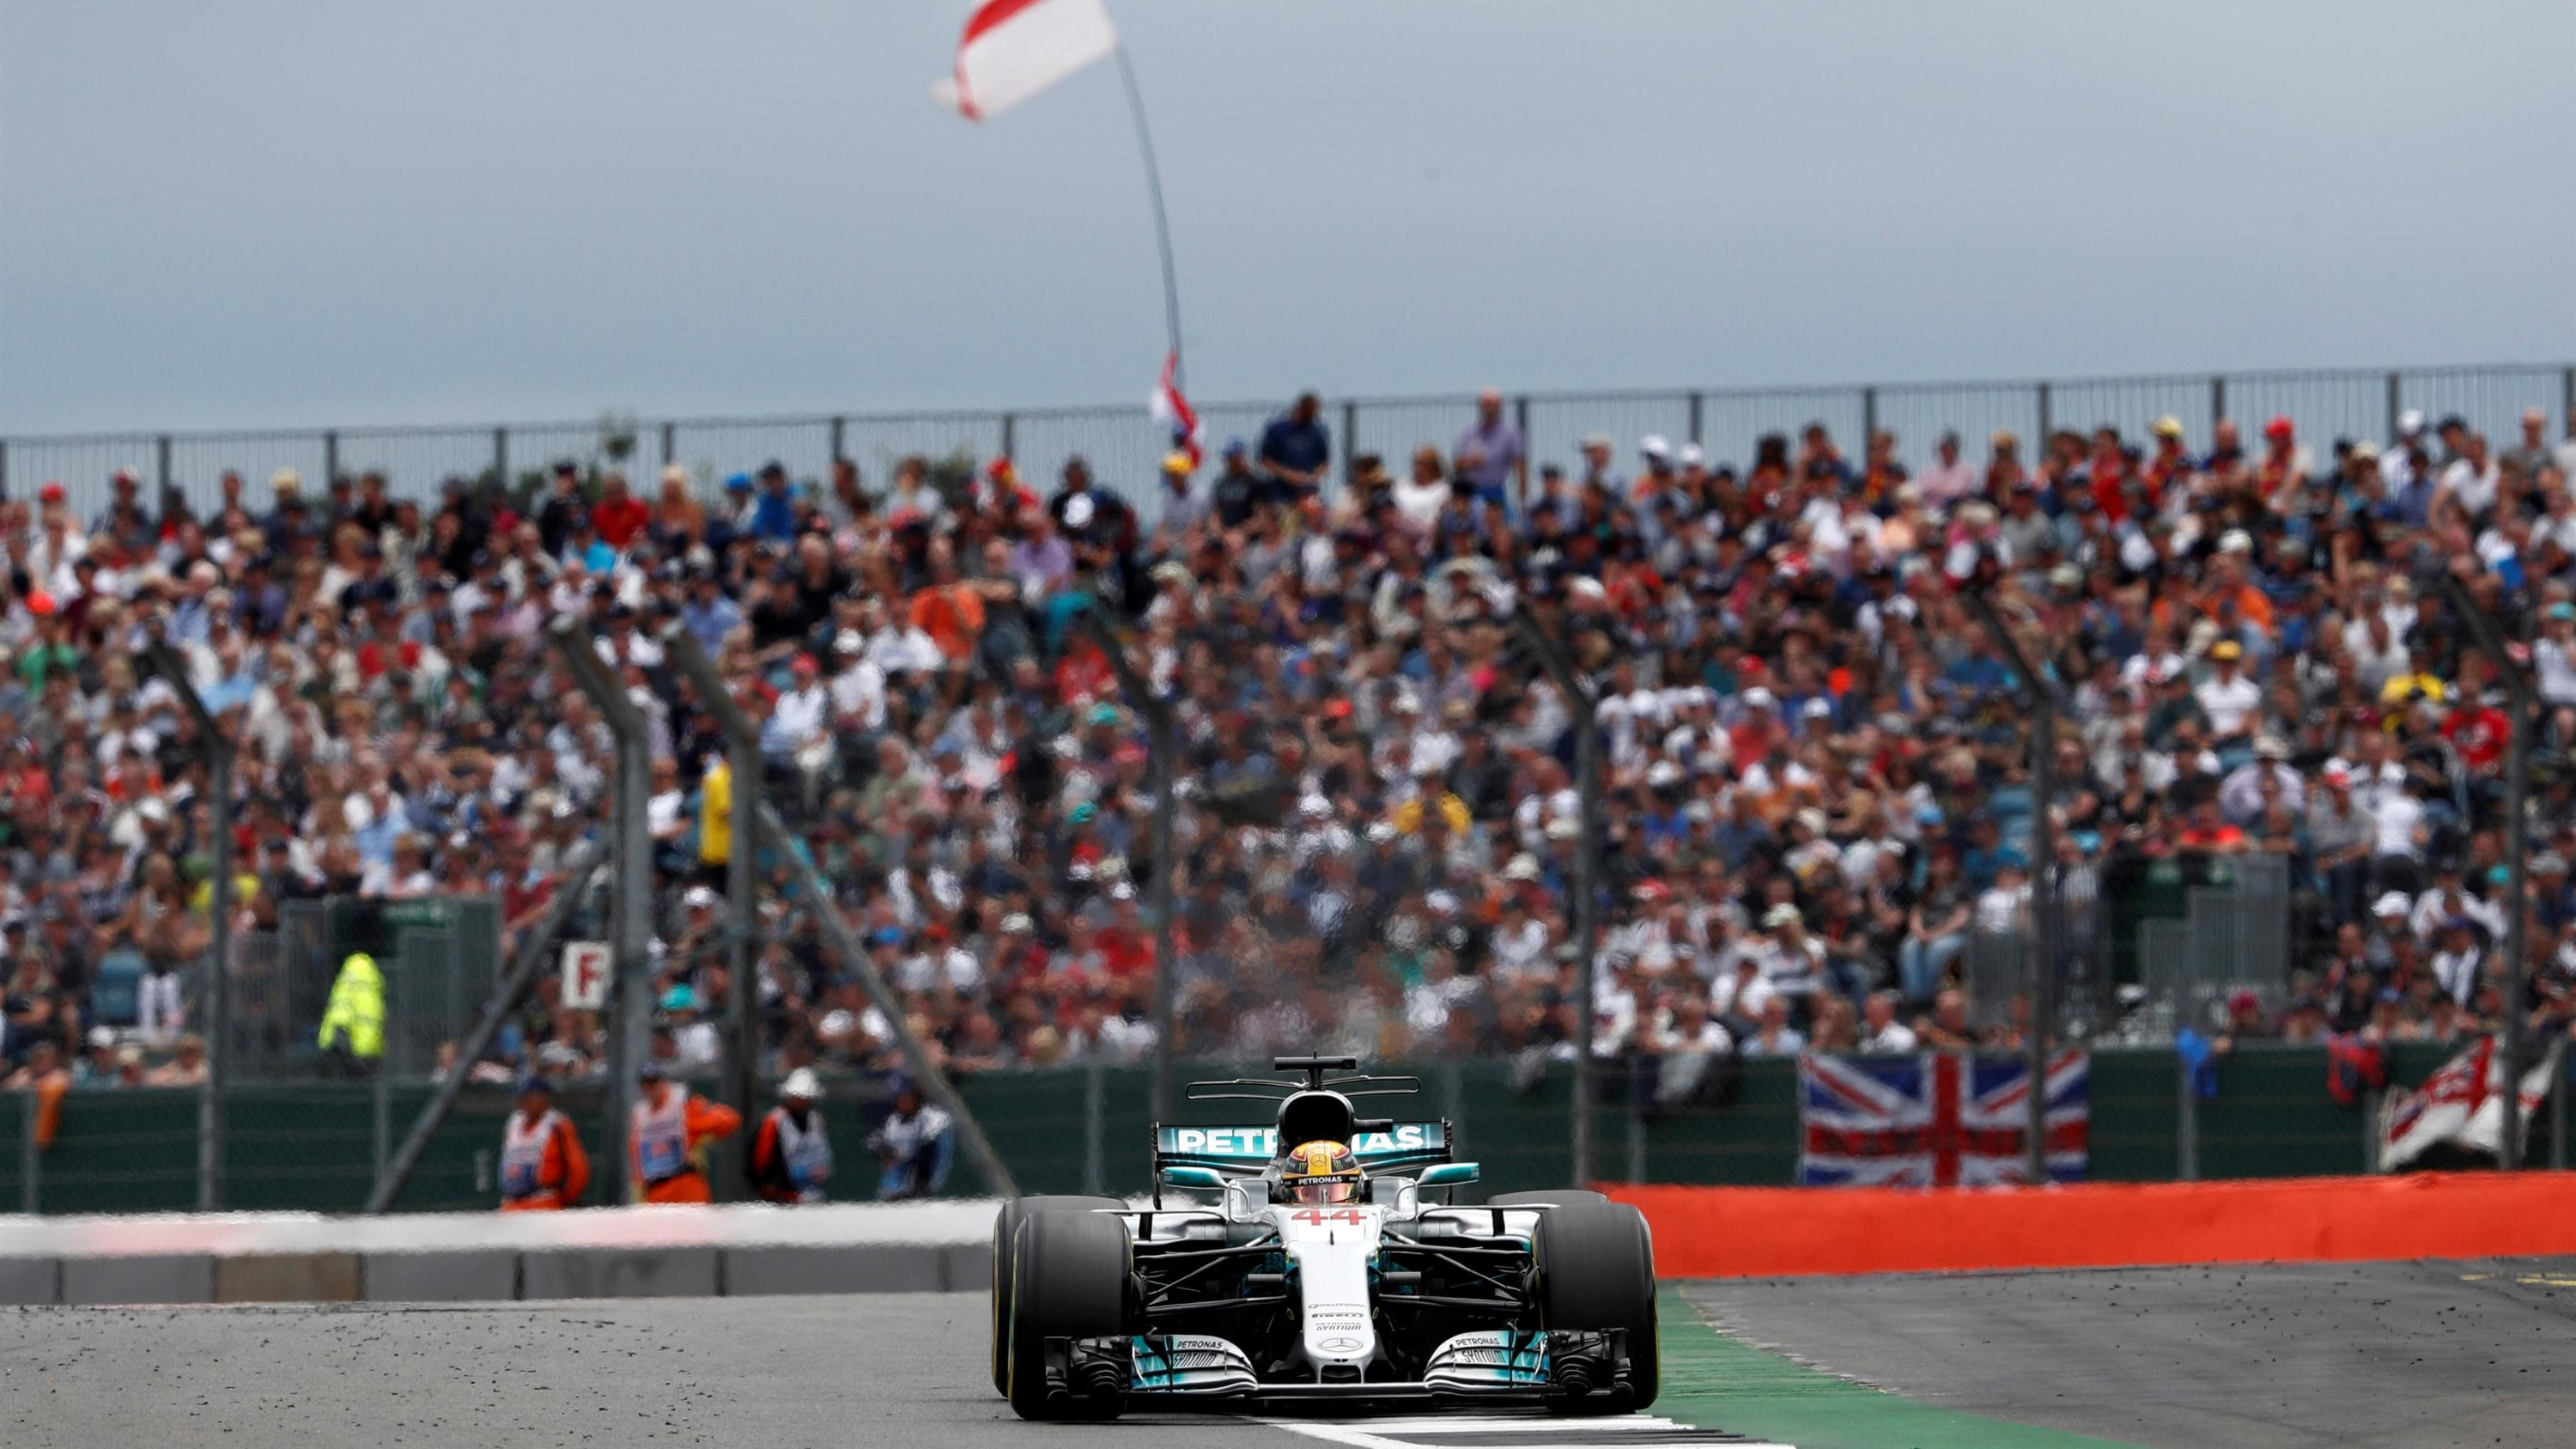 Hamilton takes pole as Sainz claims 7th and Alonso suffers